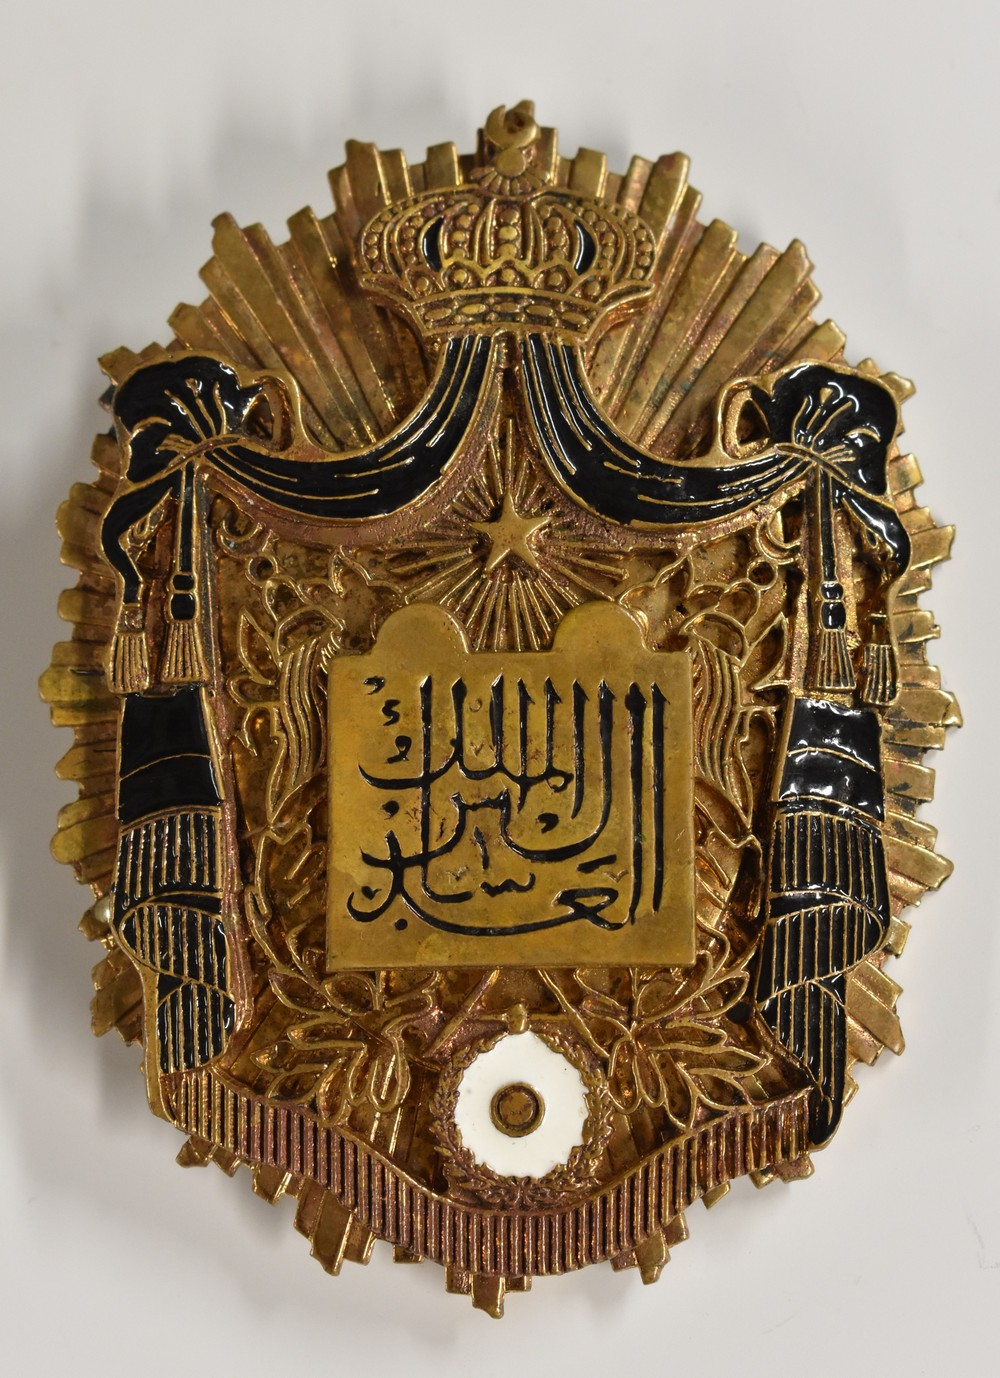 Lot 3620A - Medal, Ottoman Empire, Kingdom of Egypt, Order of the Khedive, probably silver gilt,